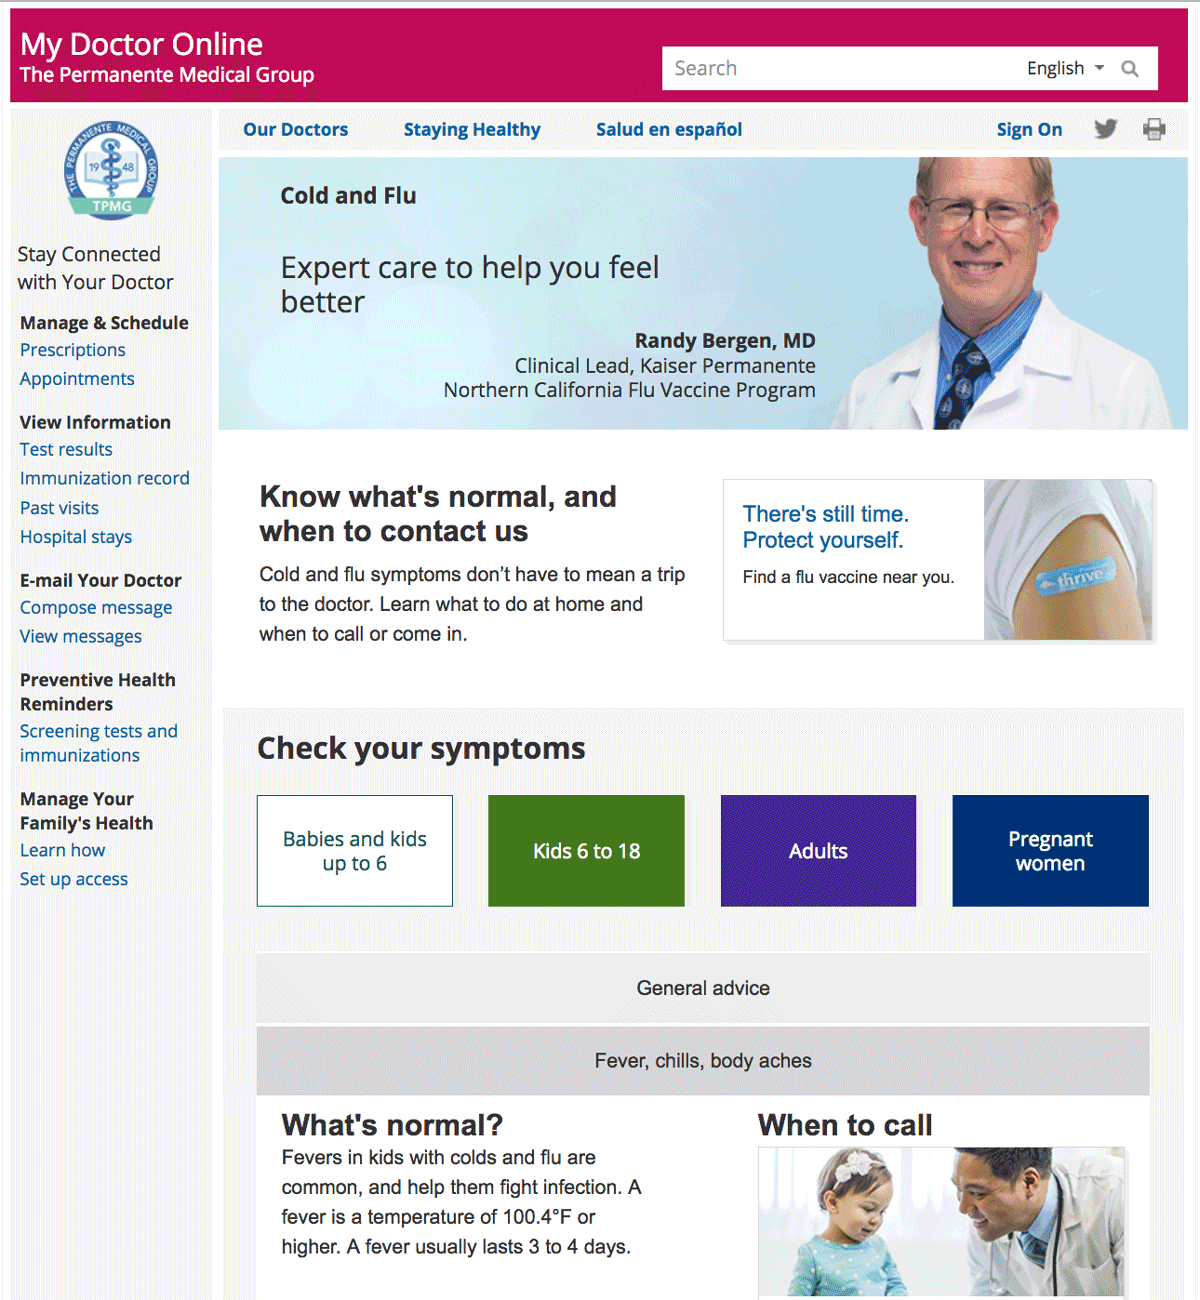 Screenshot of Cold and Flu section of My Doctor Online